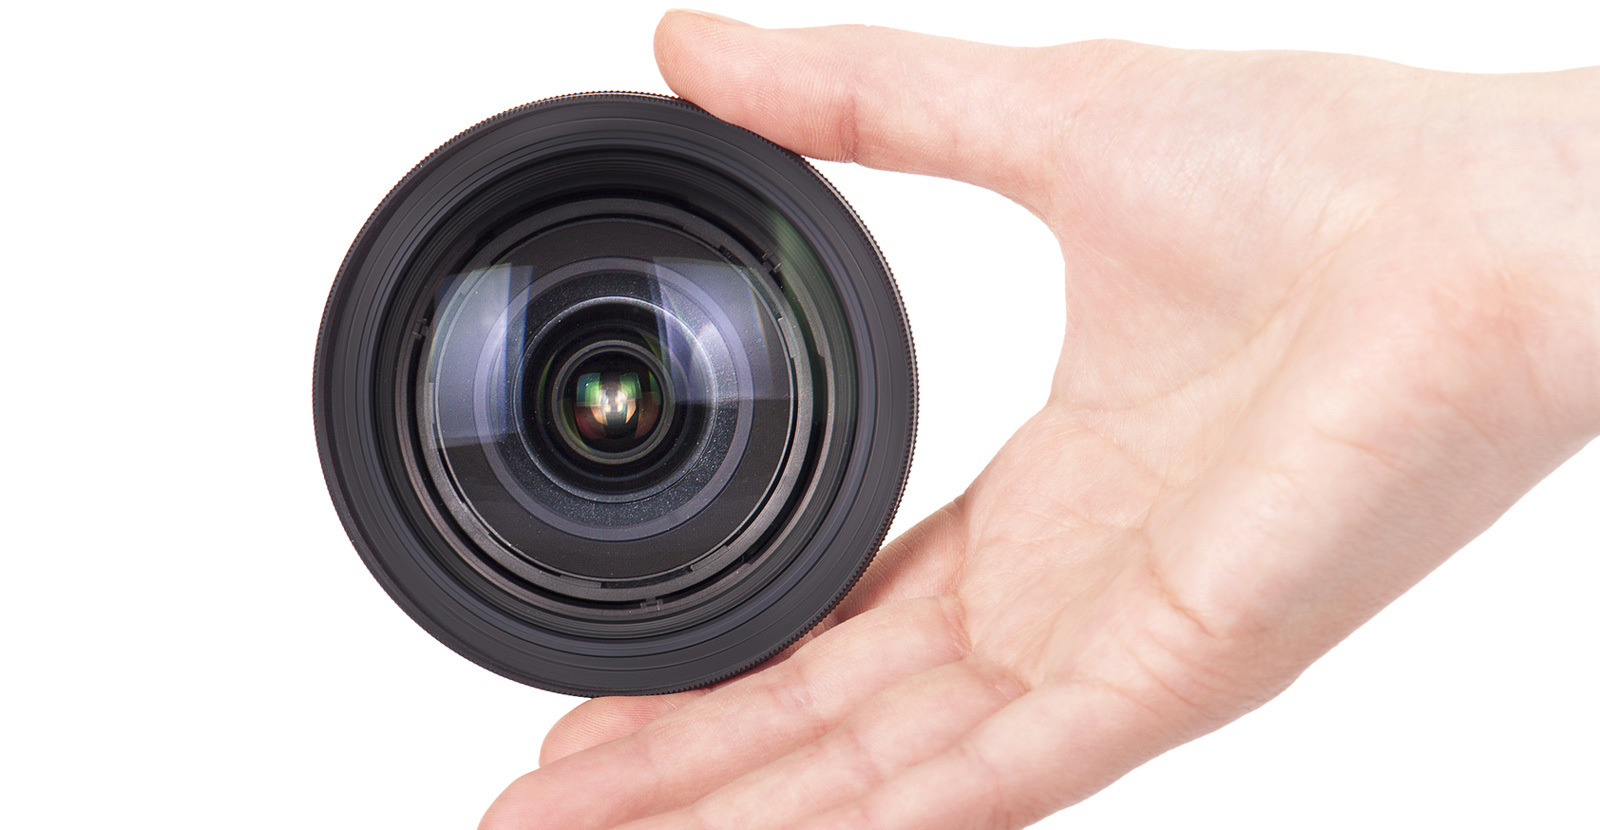 Challenges Of Shooting With a Wide Angle Lens - And 3 Tips For Success